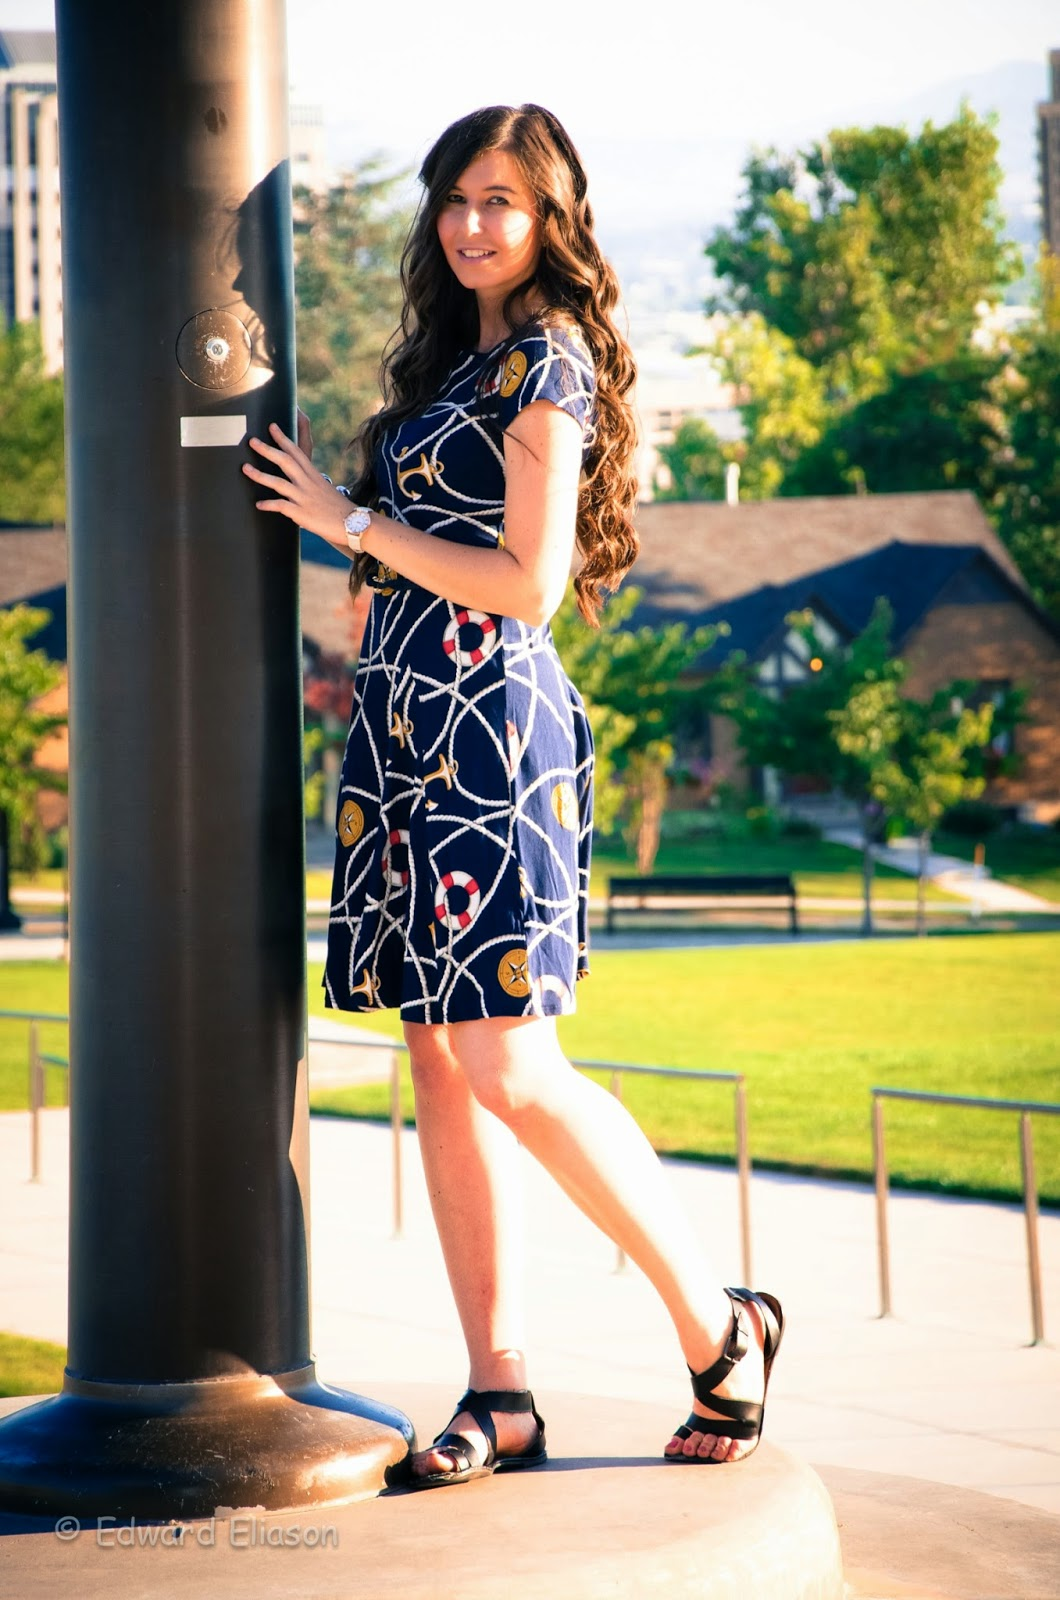 anchors trend, anchor dress, boating trend, anchors, ropes and anchors, fit and flare dress, roped dress, cute, capitol building, salt lake city capitol, salt lake capitol building,